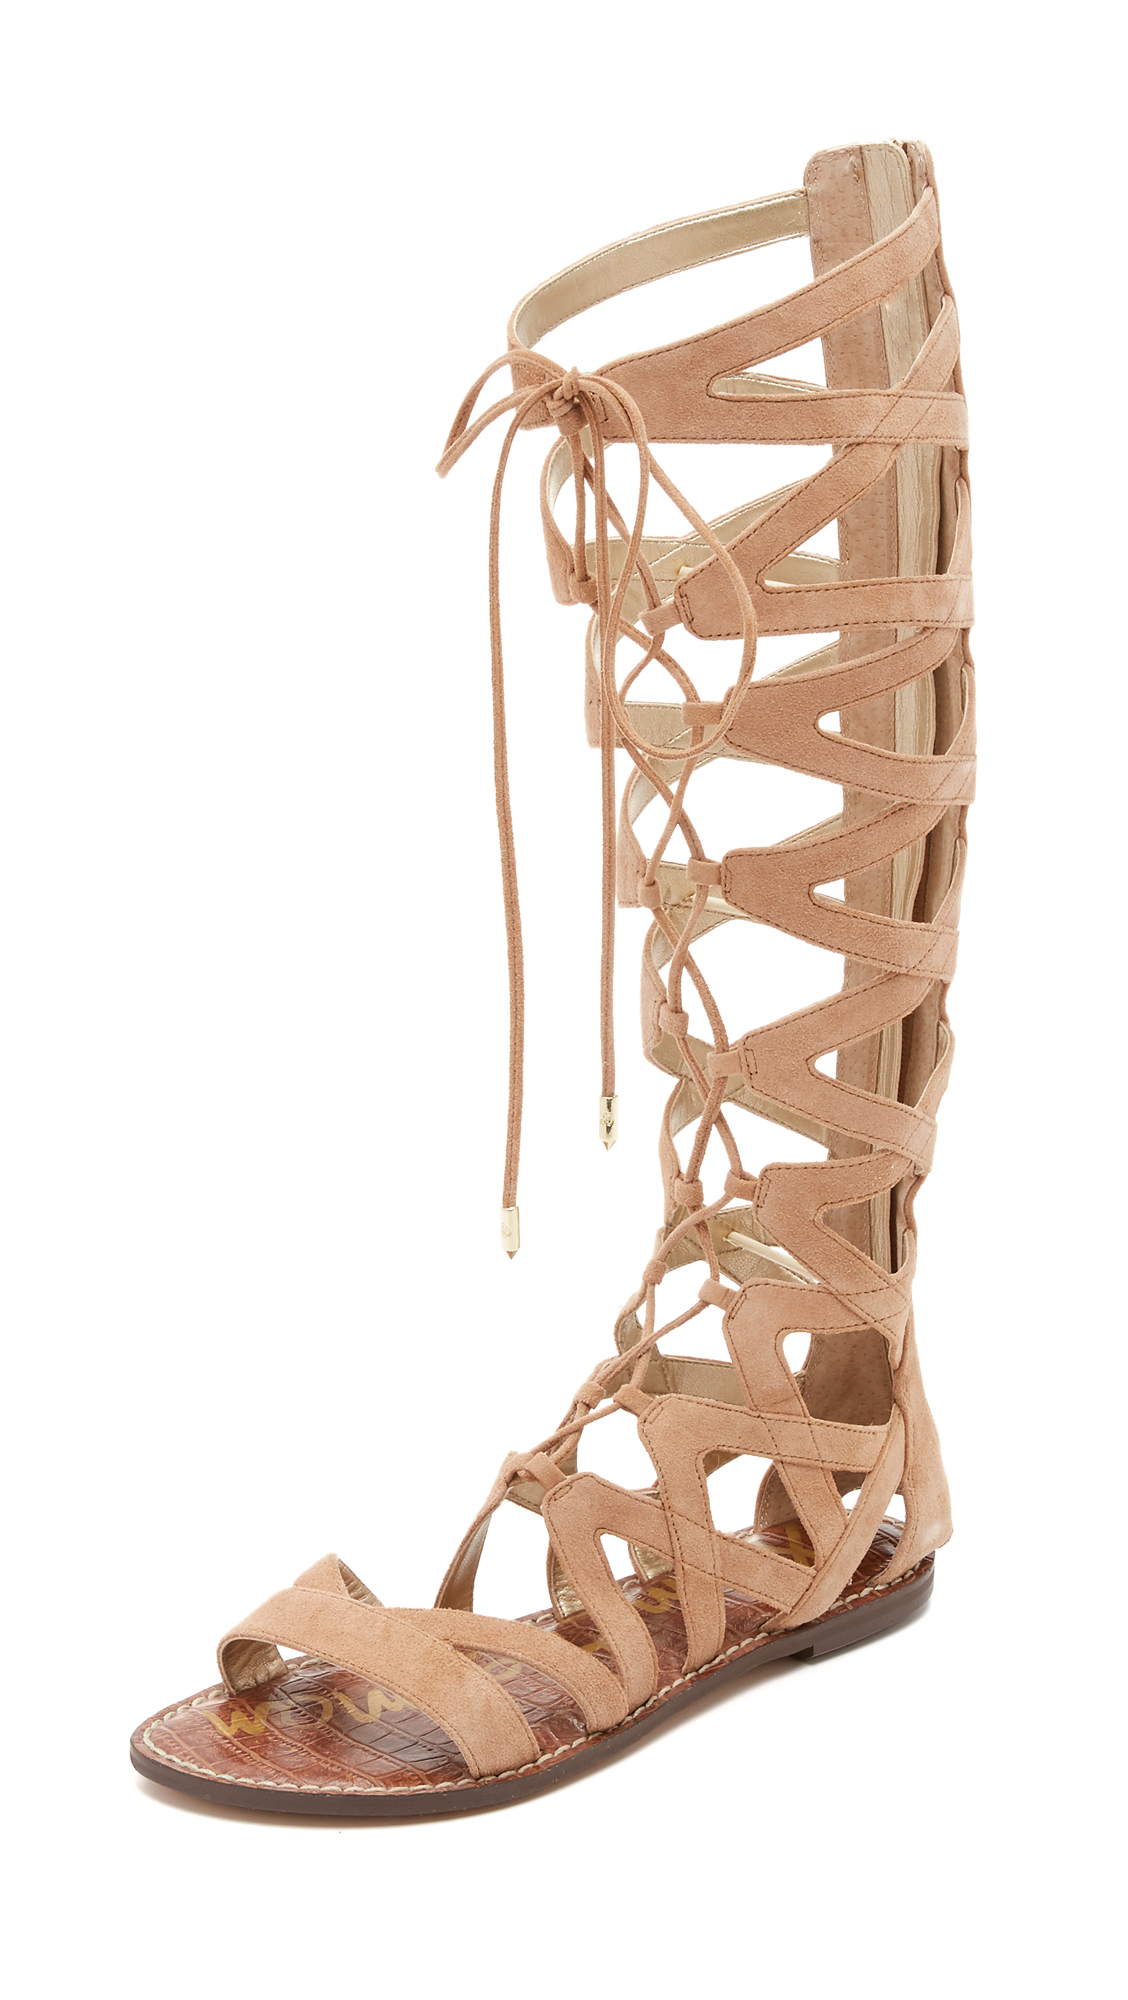 Lyst Sam Edelman Gena Camel Suede Gladiator Lace Up Sandalo in marrone